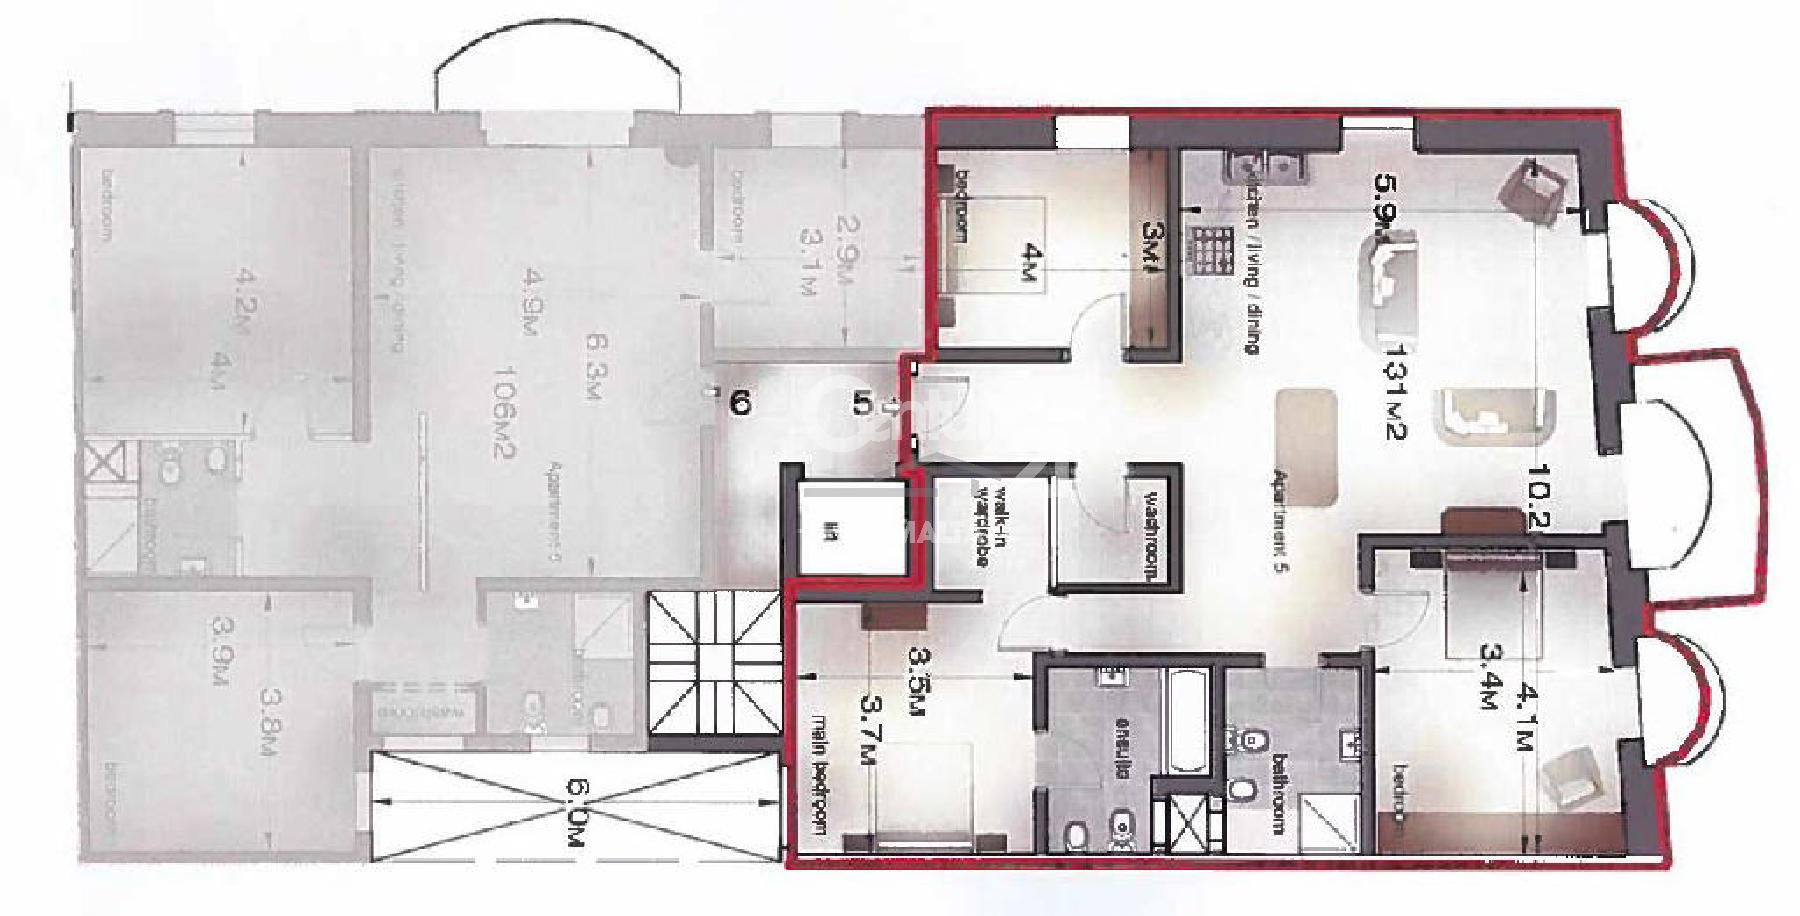 007AT09571–Finished Apartment